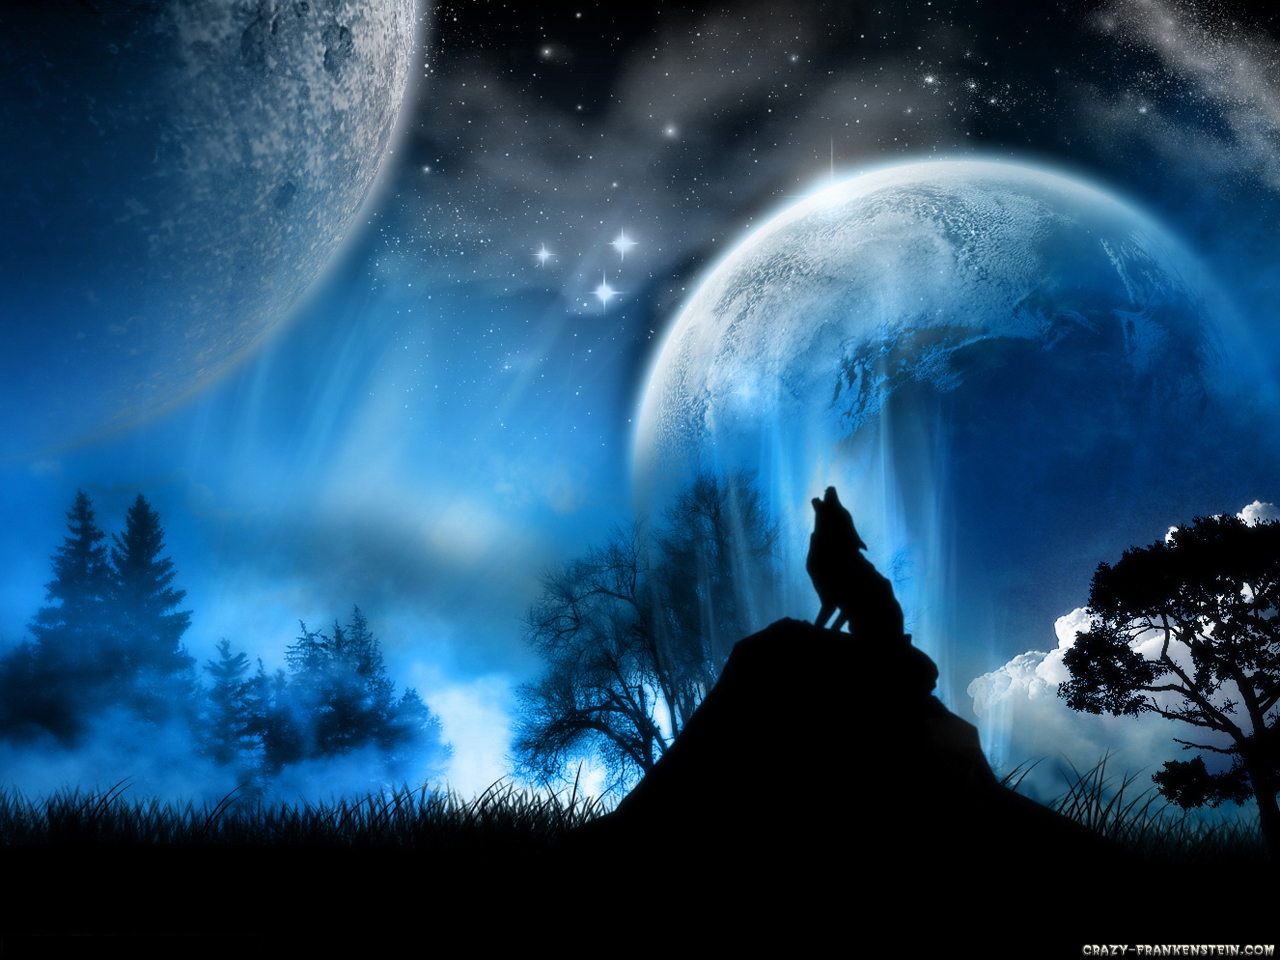 47+] Fire and Ice Wolf Wallpaper on